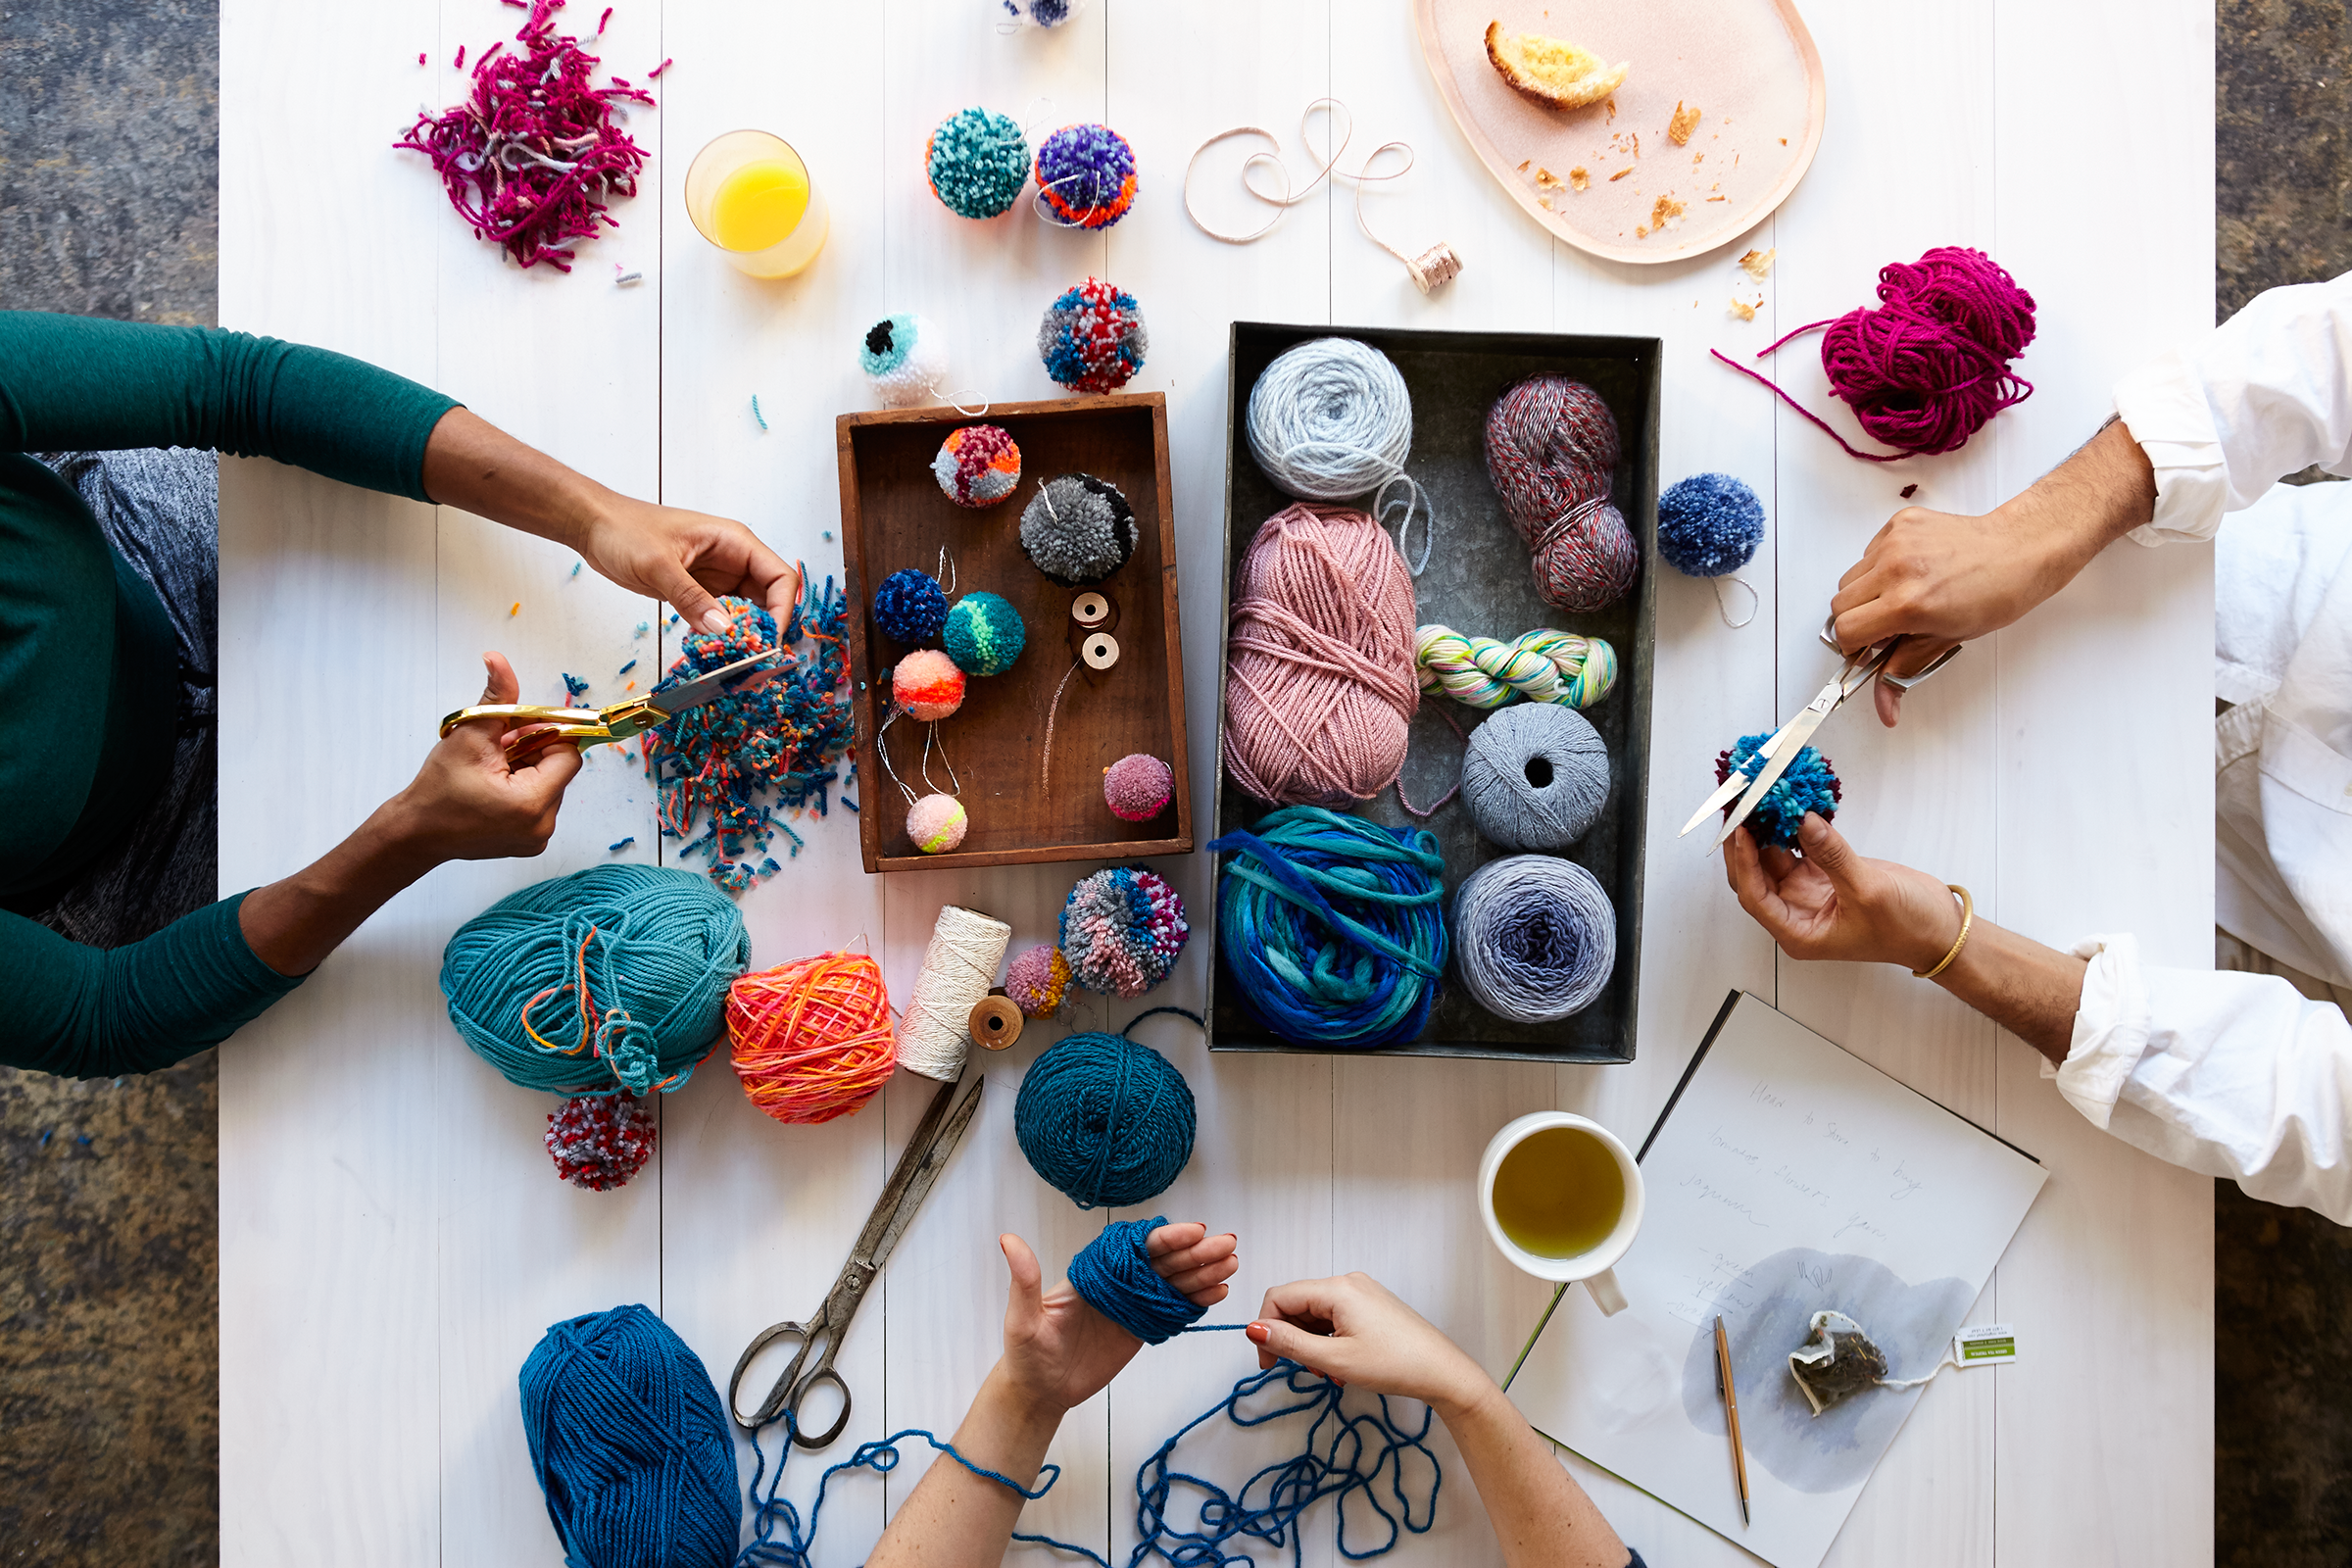 Etsy Studio plans to overtake the craft supplies space